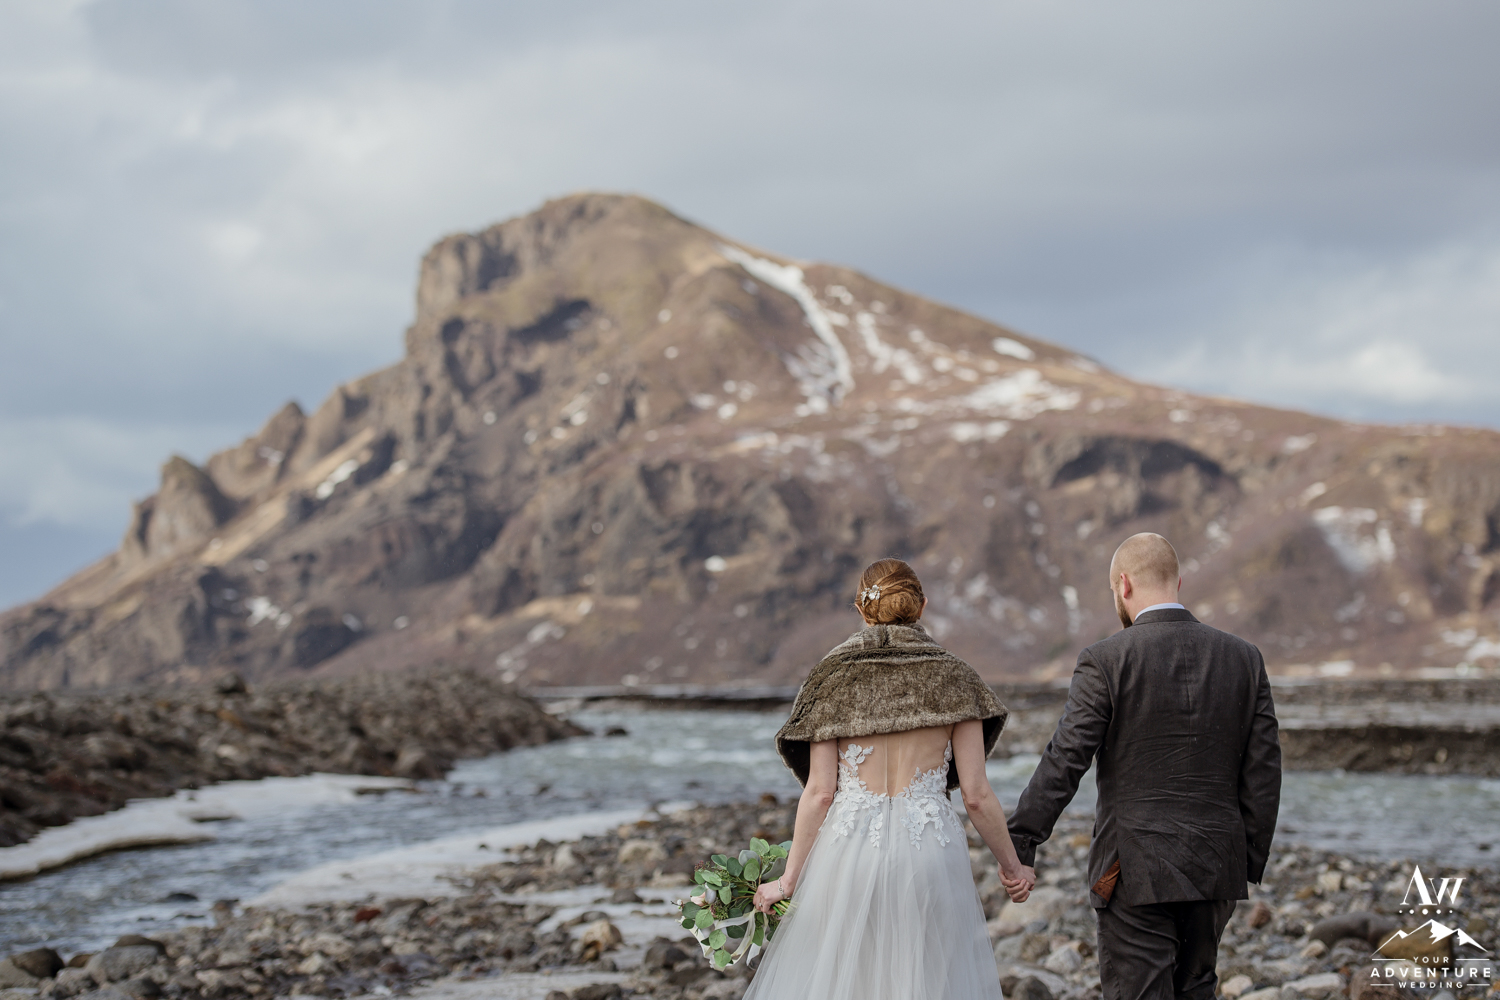 Adventurous Couple hiking by a river on wedding day